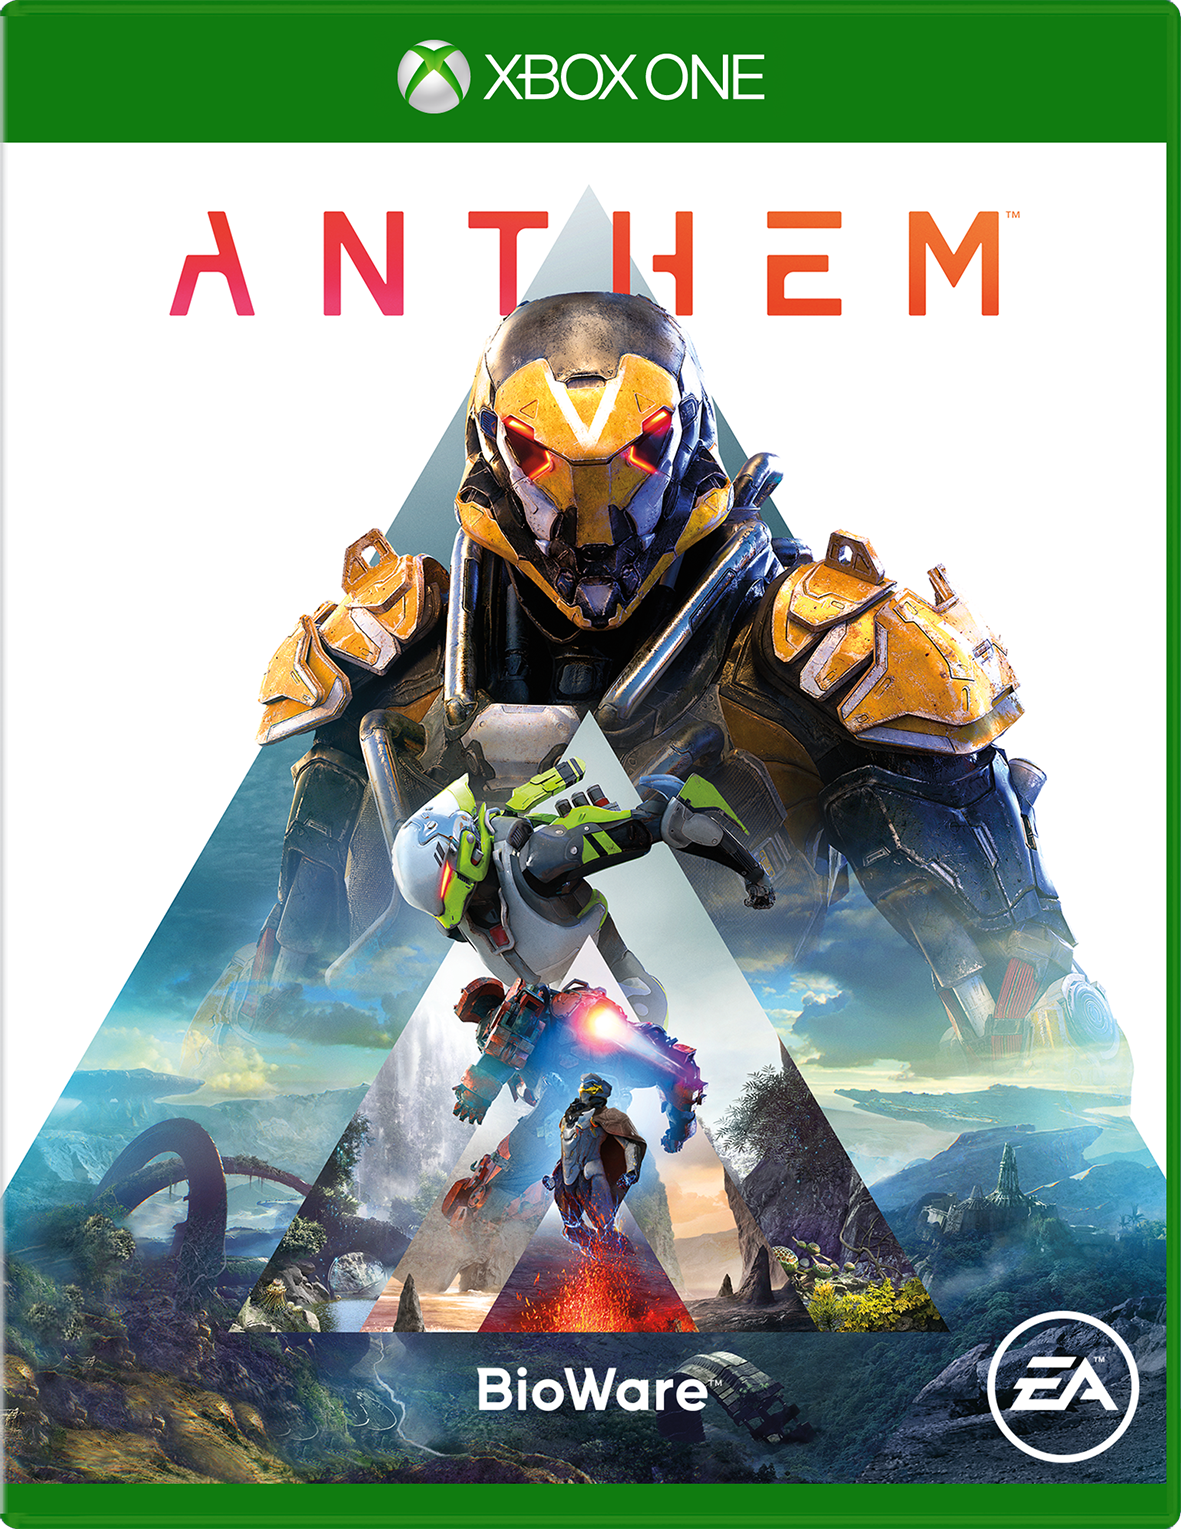 Image of Anthem for Xbox One QH4-01217